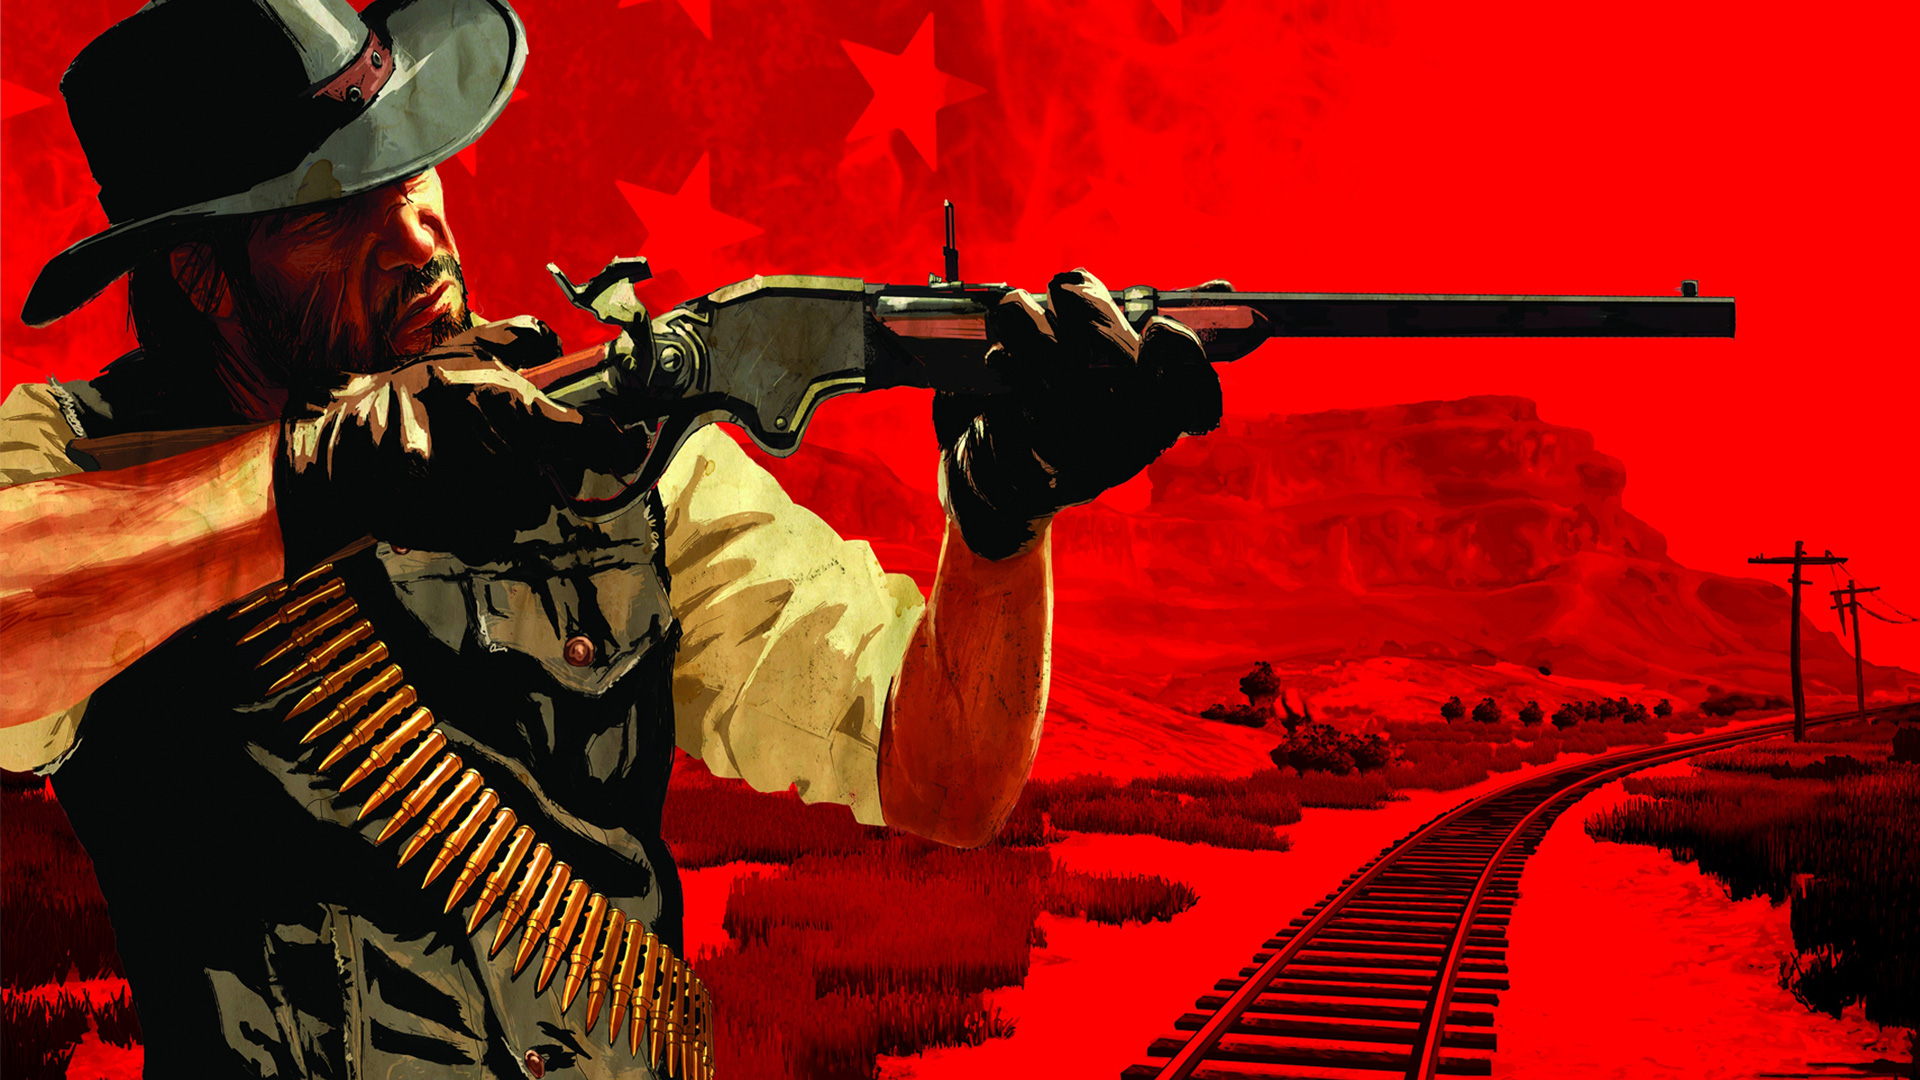 red dead redemption wallpapers | best wallpapers